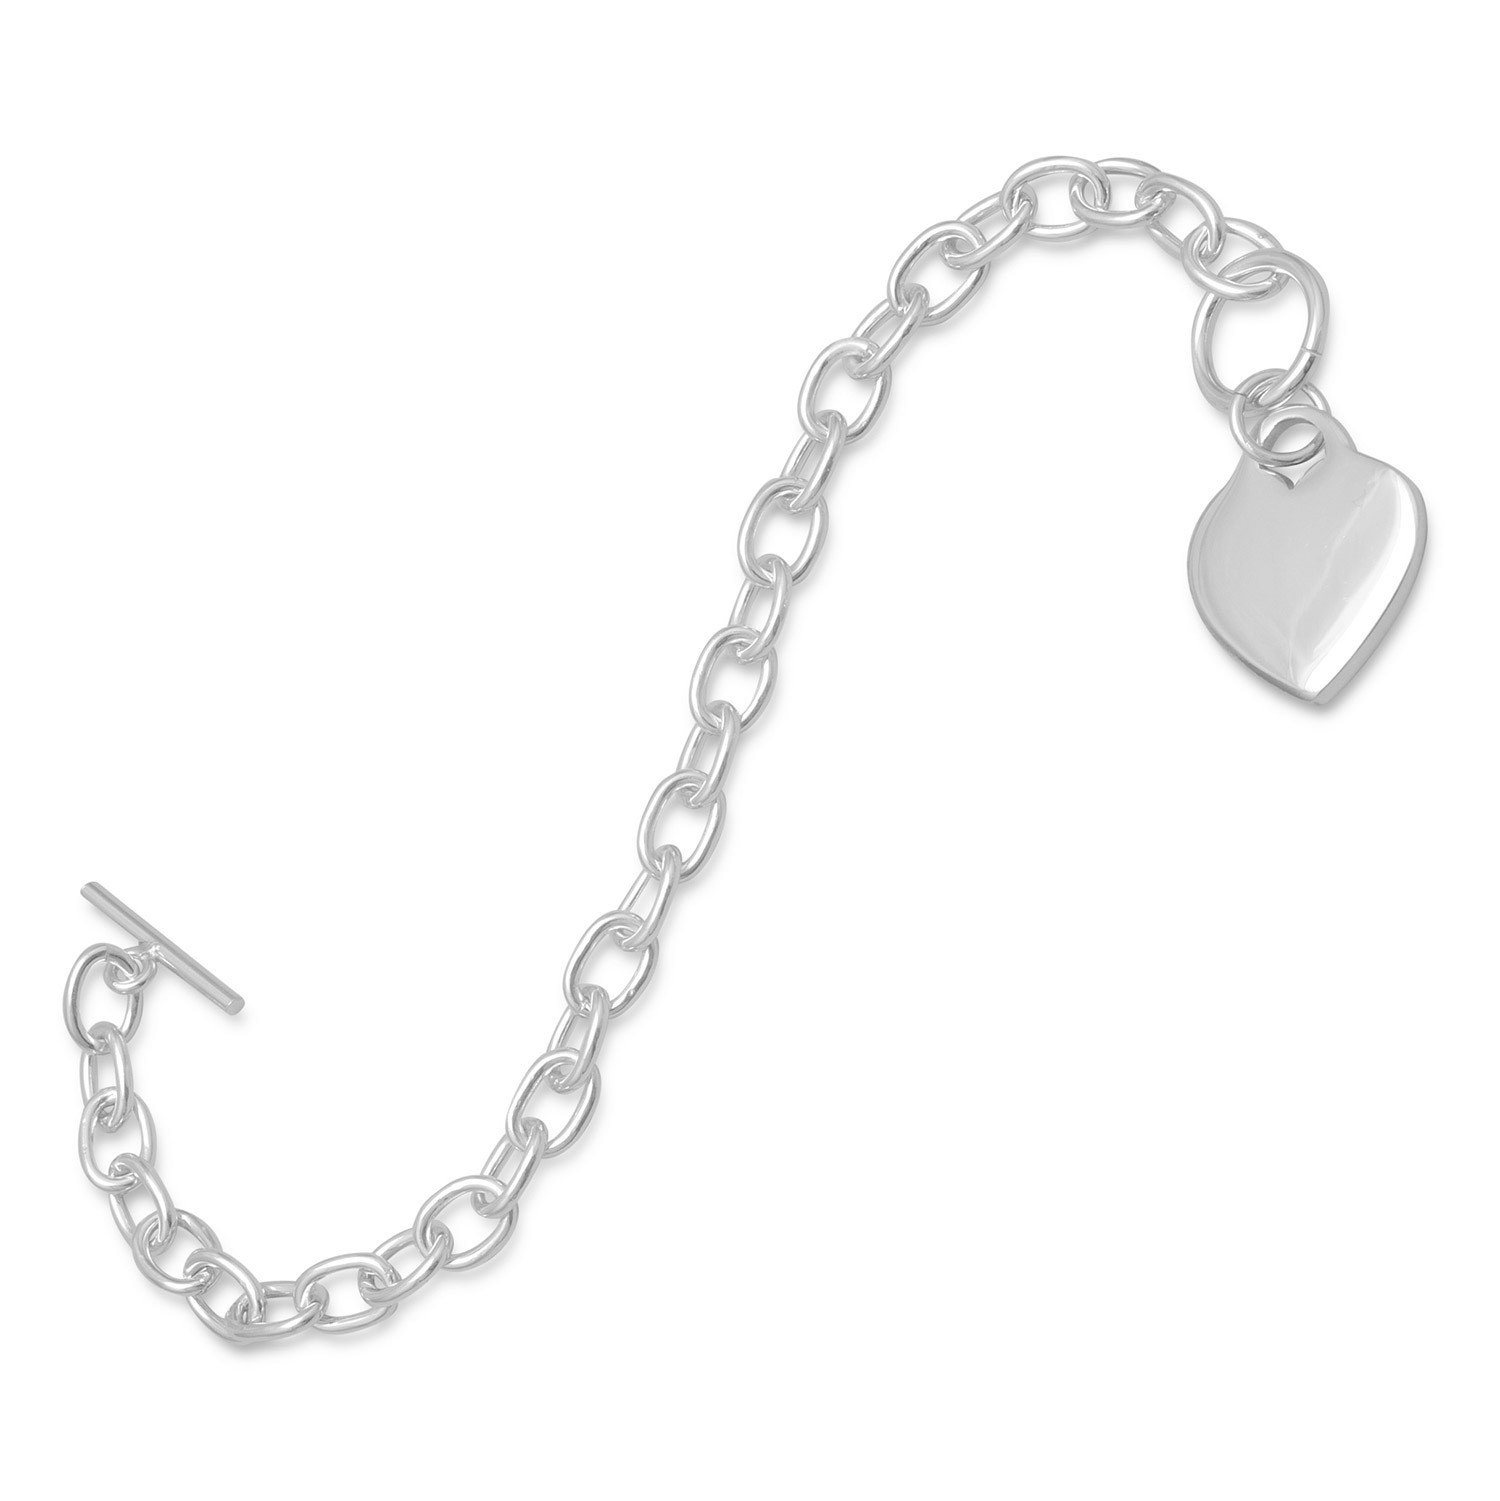 7.5″ Toggle Bracelet with Small Heart Tag